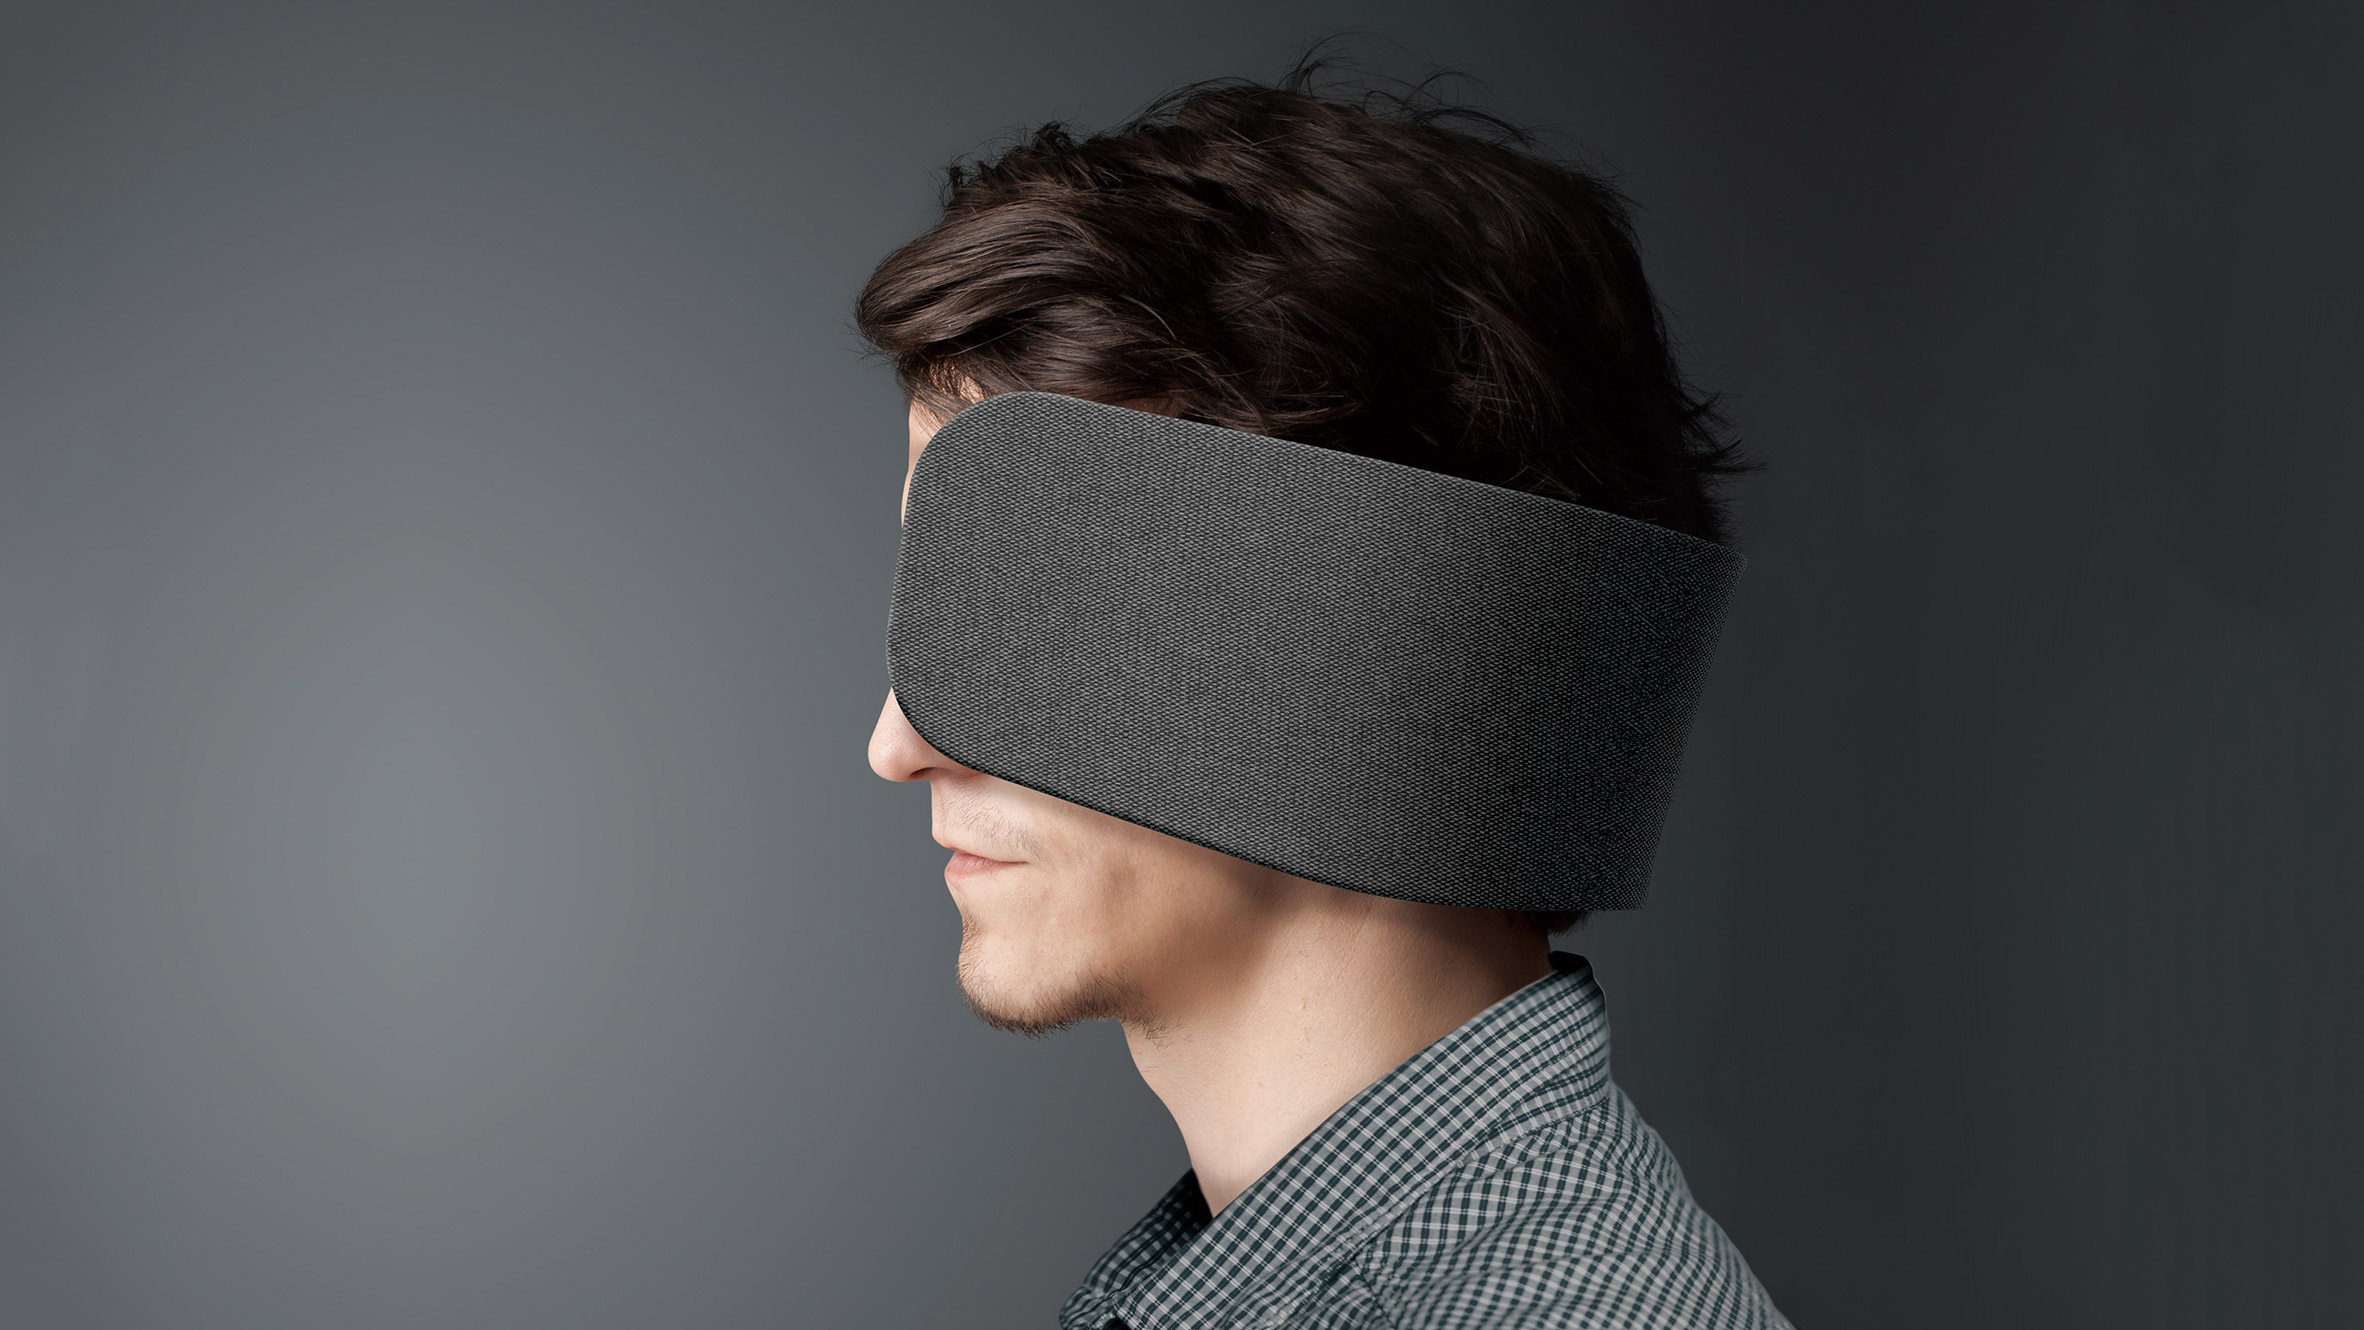 Panasonic's human blinkers help people concentrate in open-plan offices